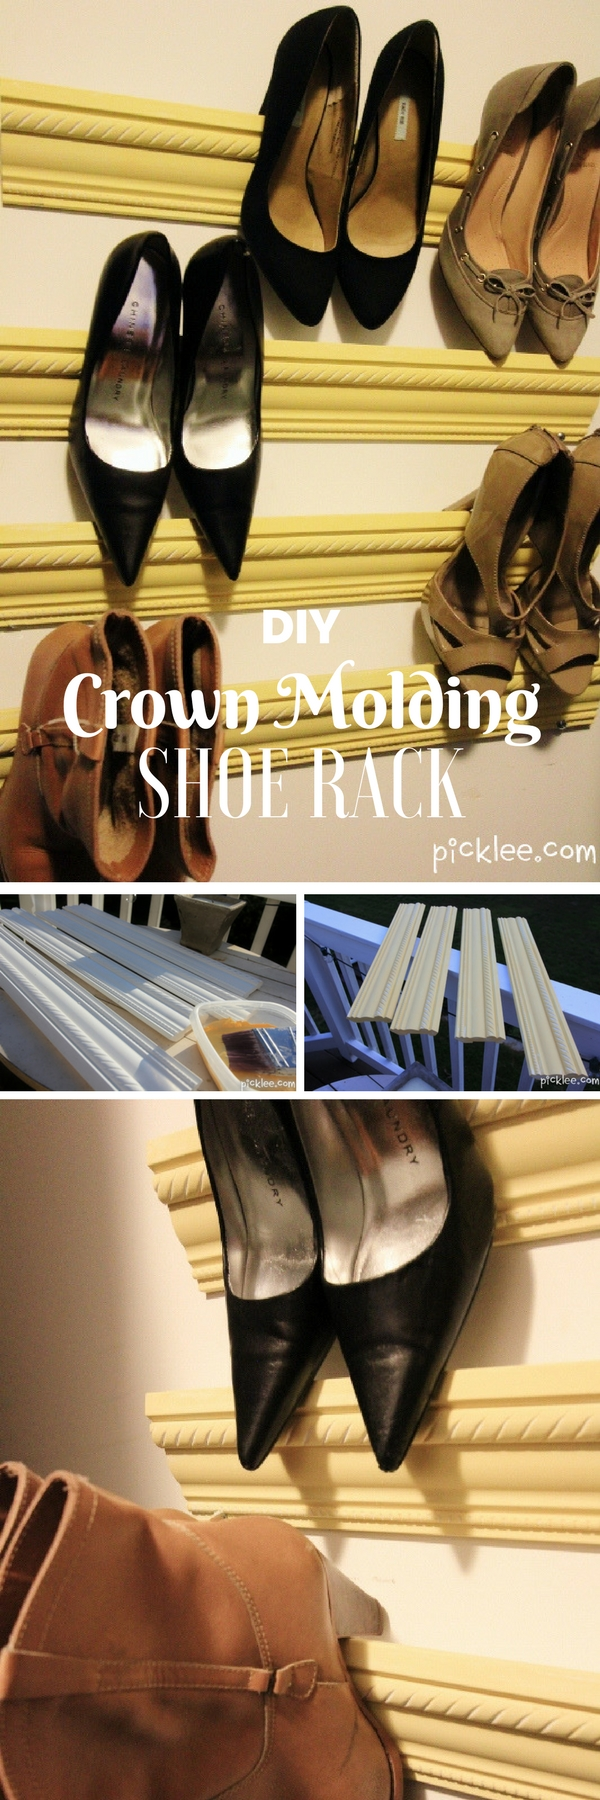 60+ Easy DIY Shoe Rack Ideas You Can Build on a Budget - Check out how to build a DIY shoe rack from crown molding